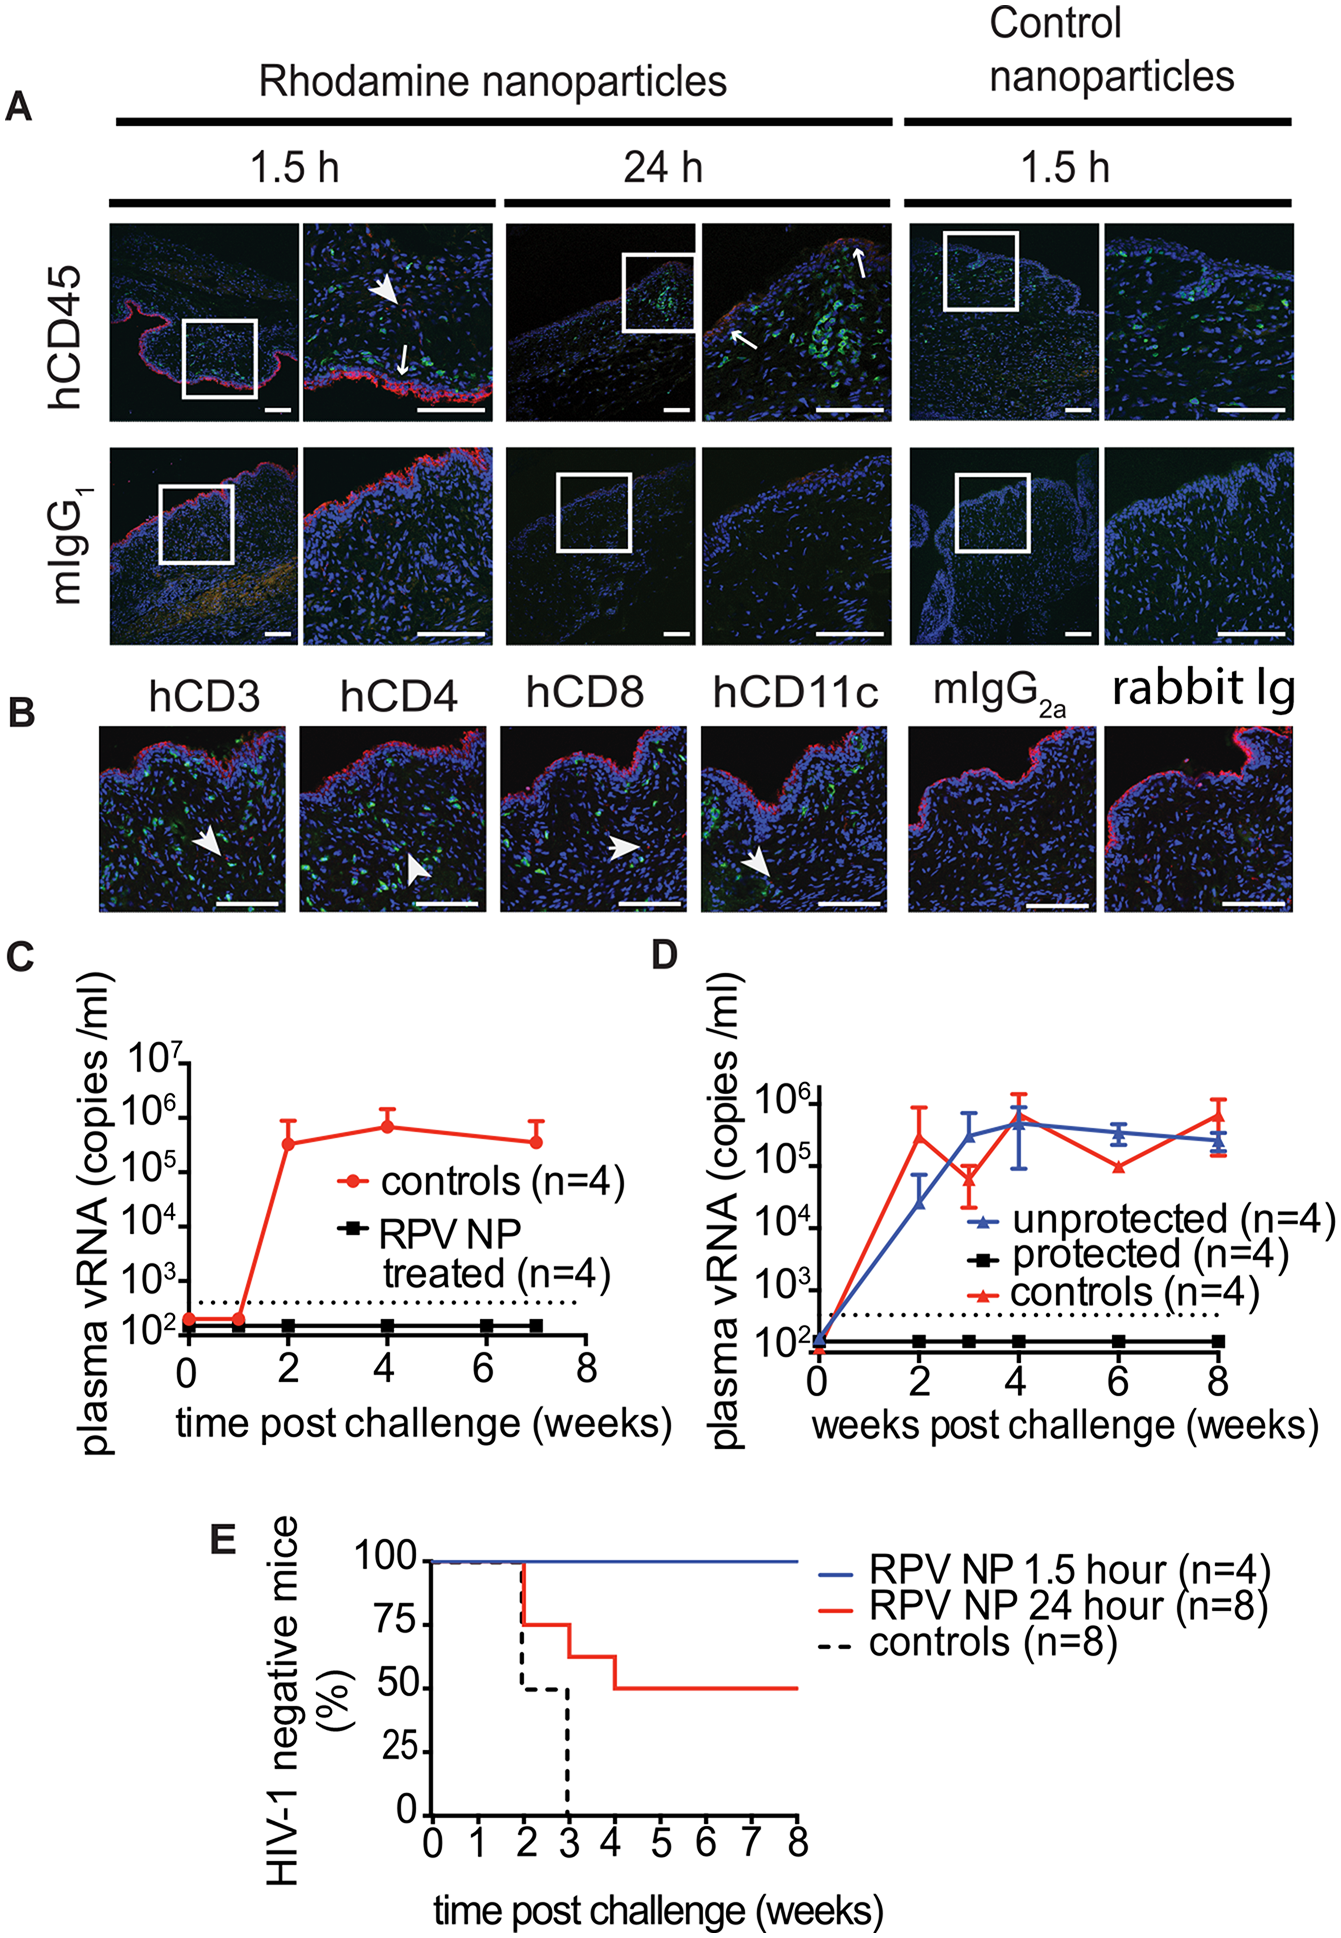 Distribution of rhodamine-labeled NPs in thermosensitive gel in the mouse female reproductive tract (FRT) and the ability of PLGA/RPV to offer pericoital protection against HIV-1 transmission.